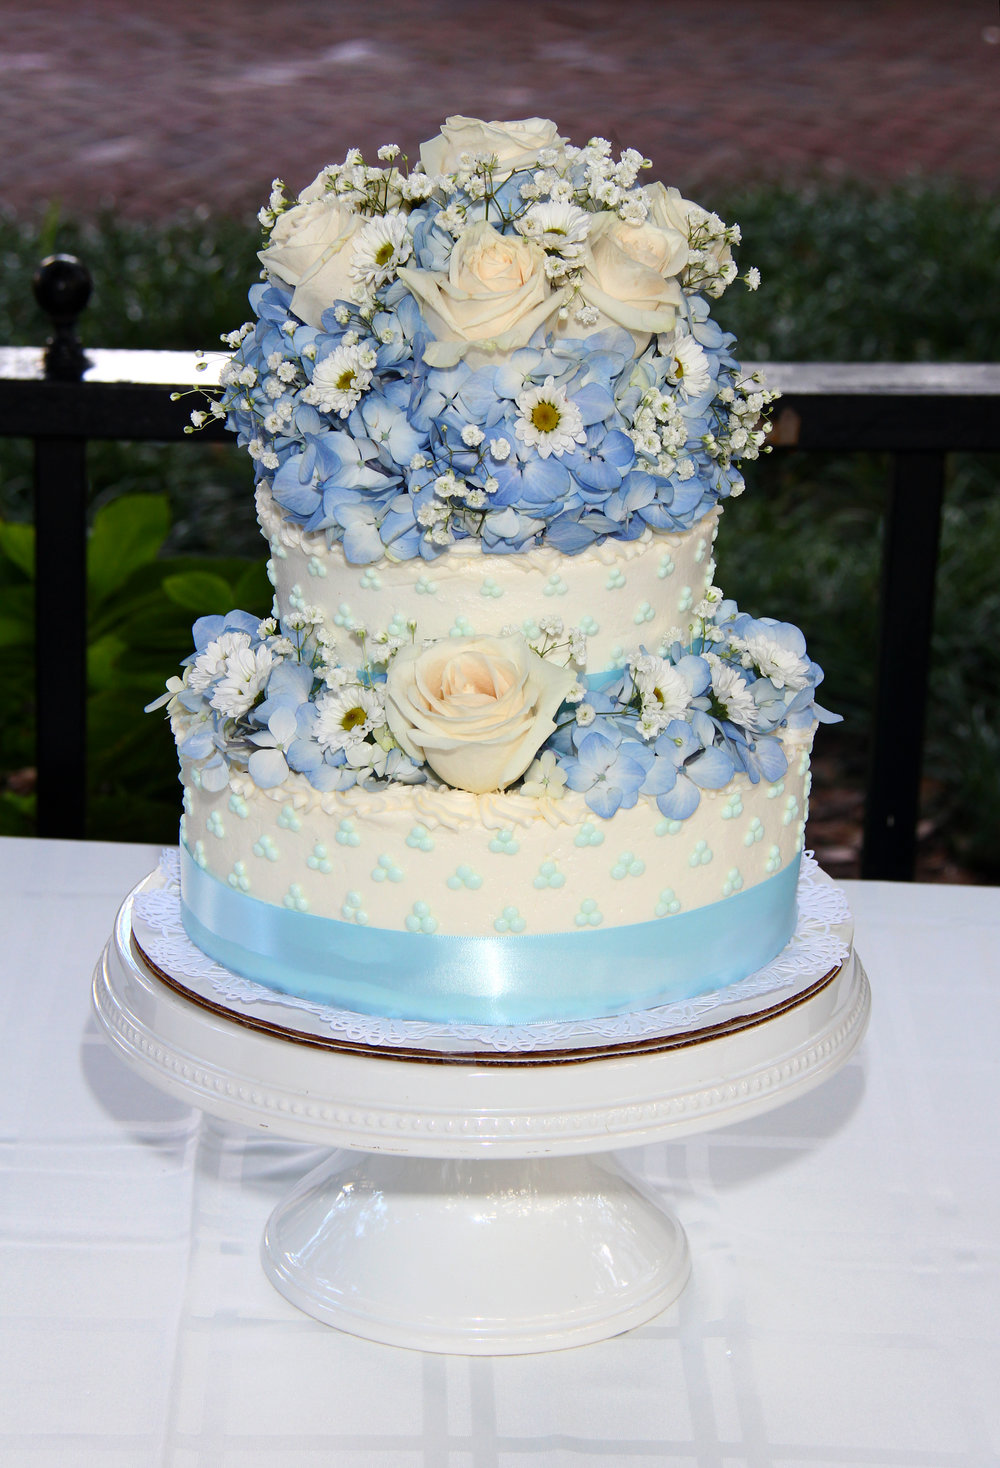 Blue and white wedding cake with flowers Savannah GA